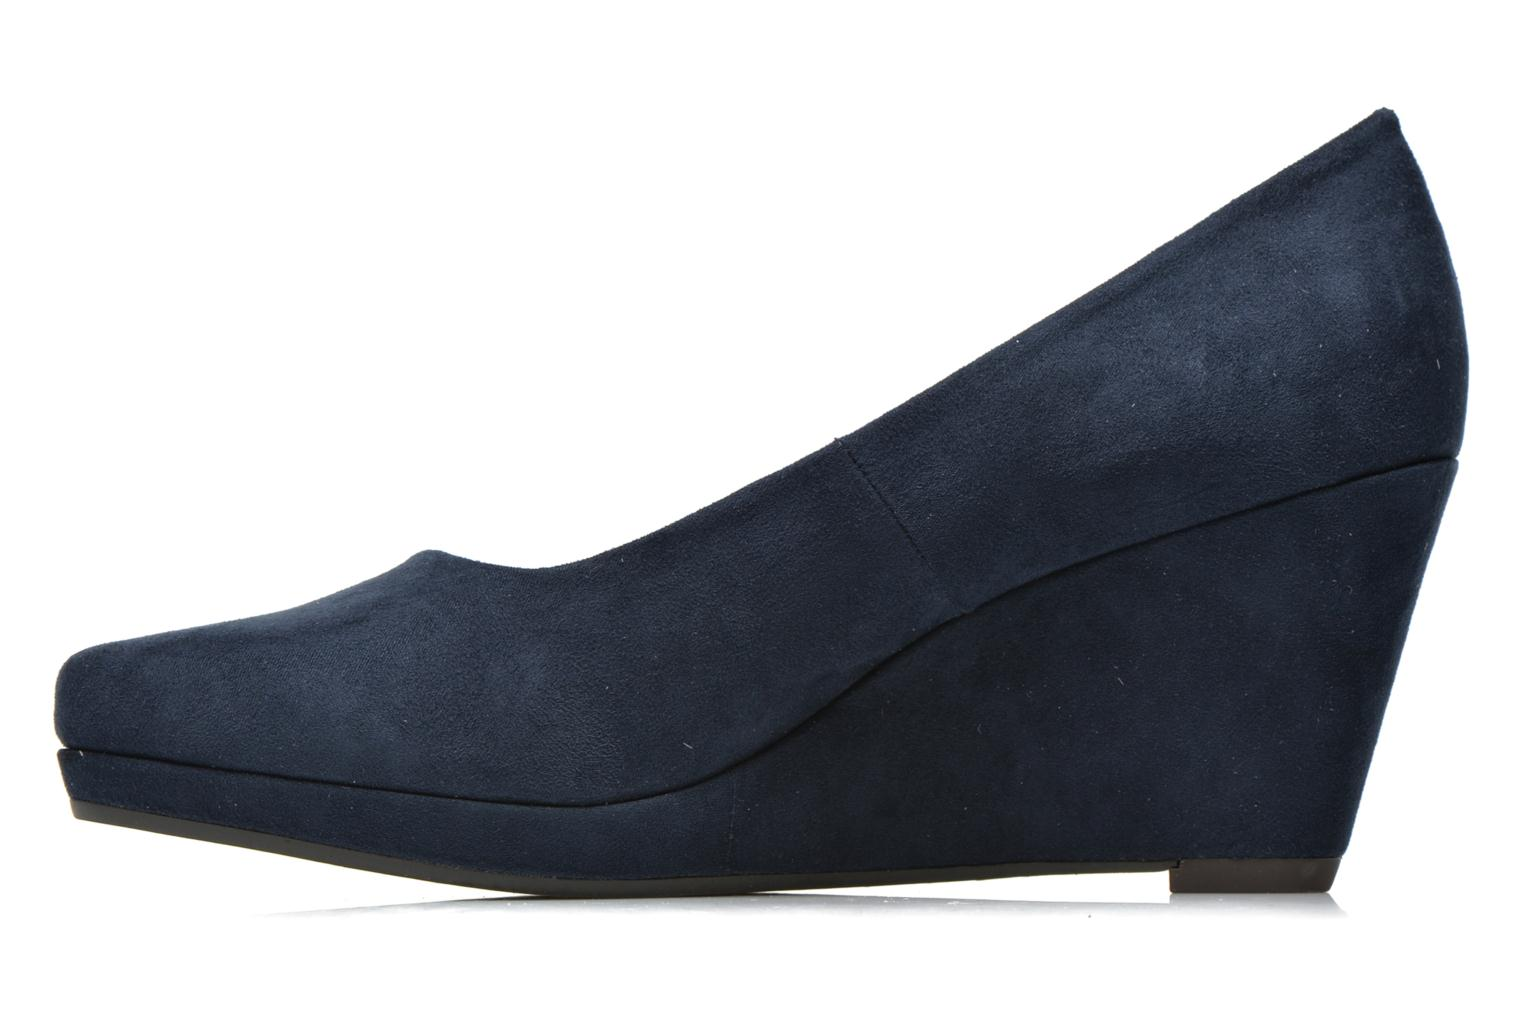 Rucuhy 2 Navy